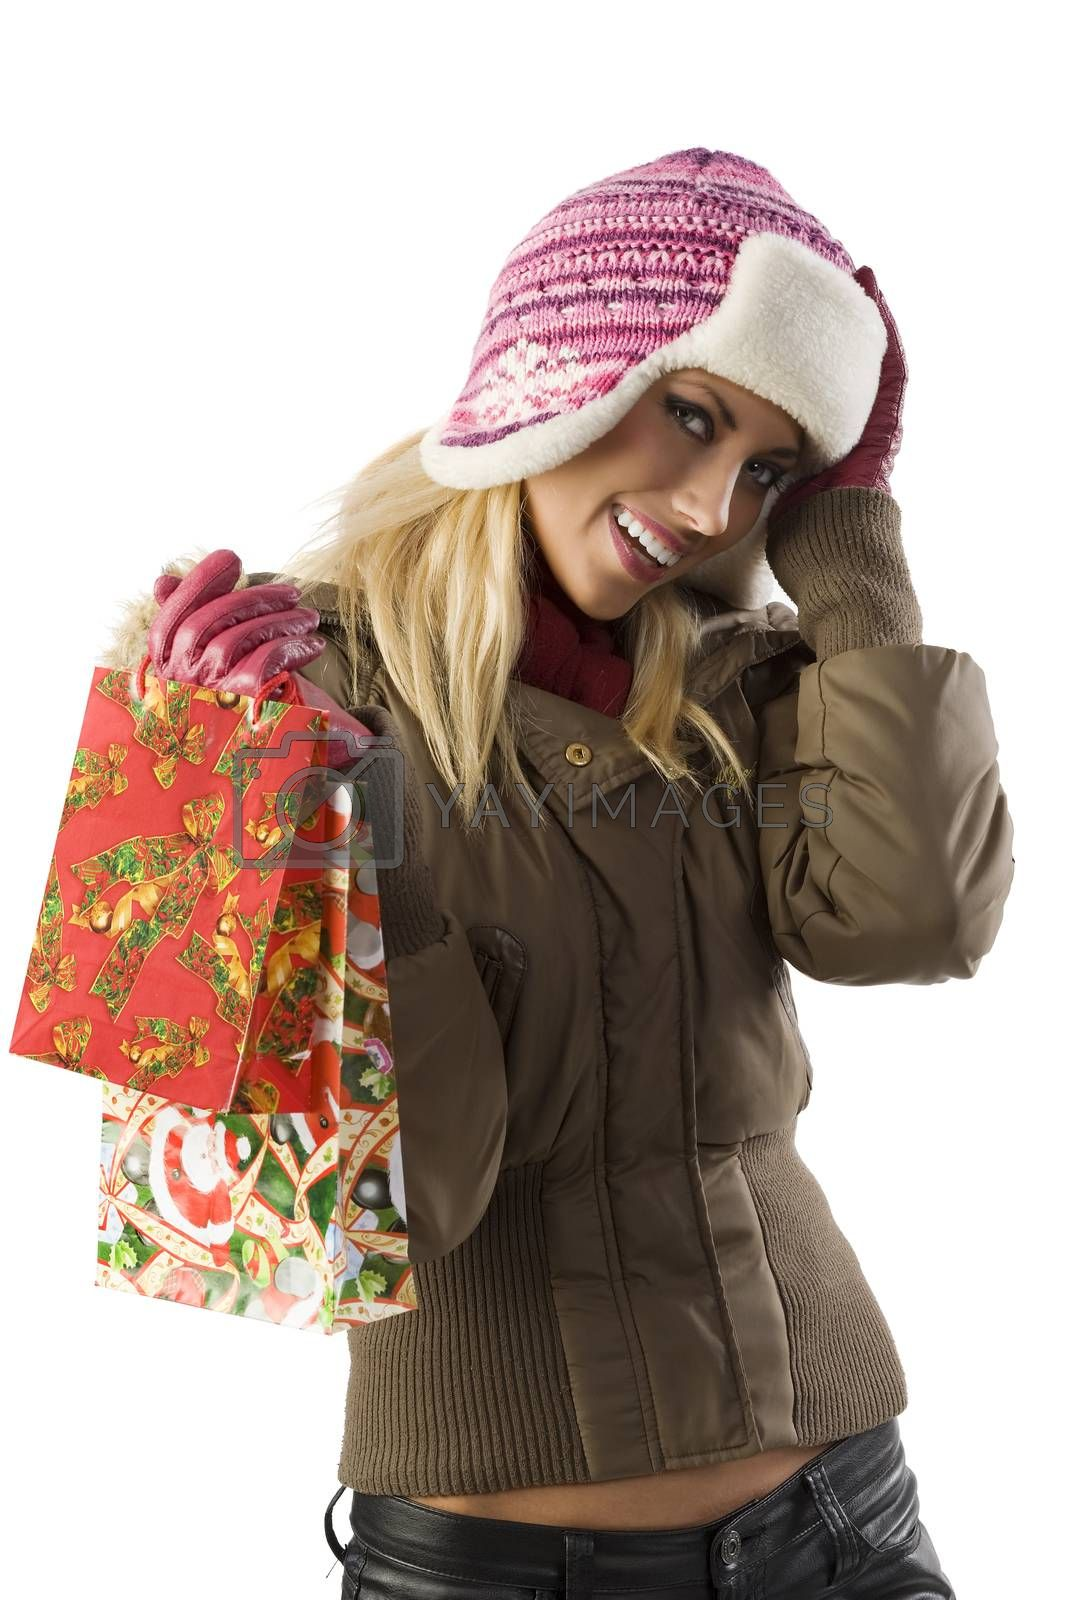 Royalty free image of christmas shopping by fotoCD